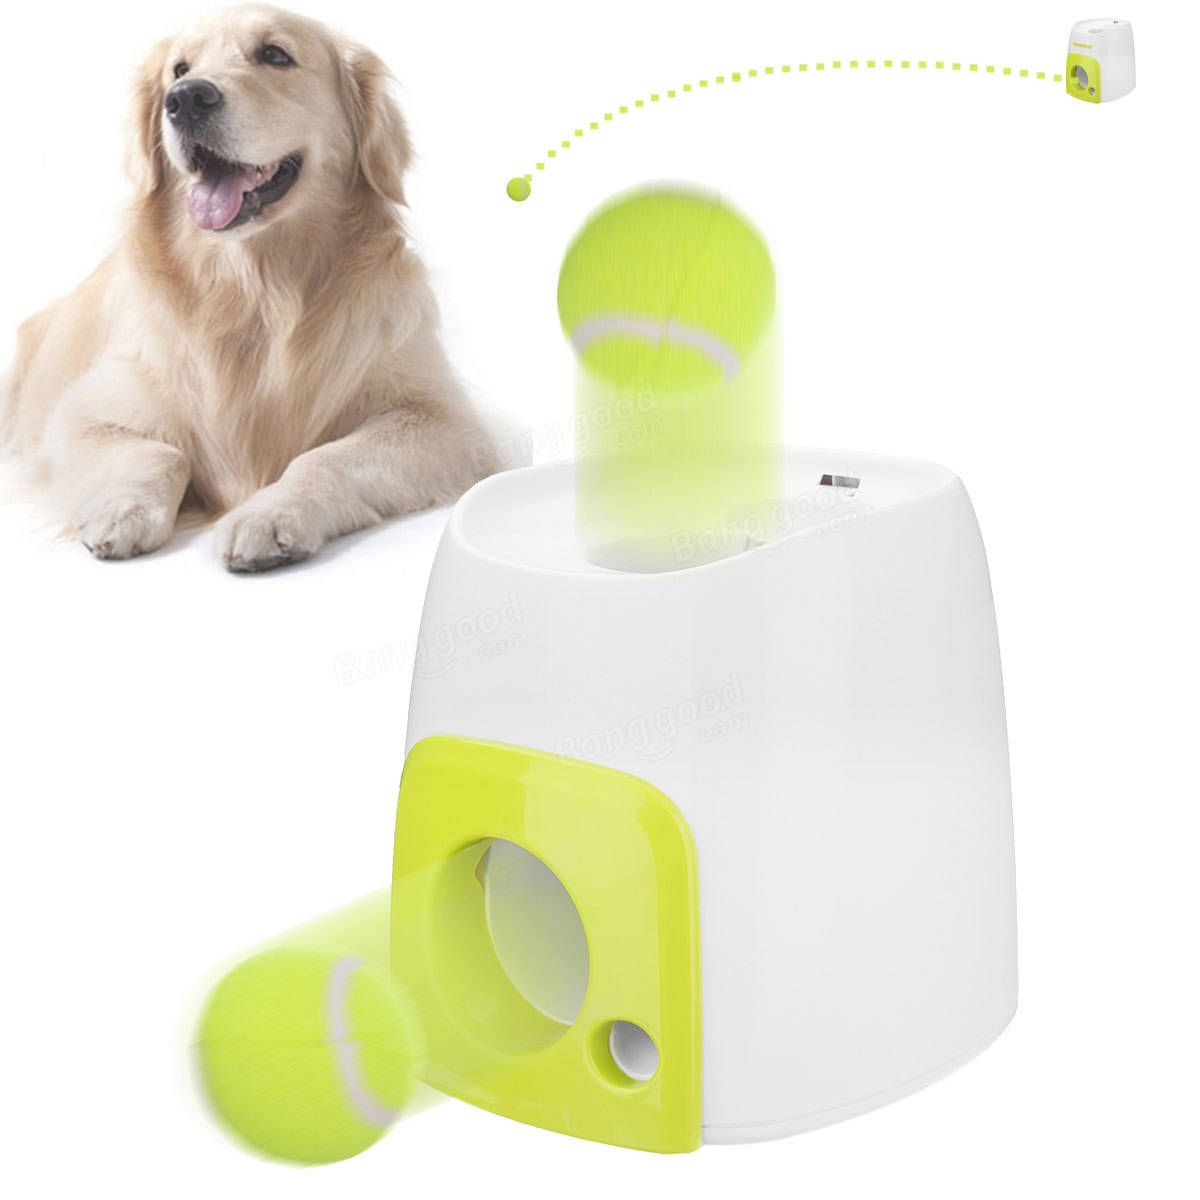 Creative Pet Ball Launcher Toy Dog Tennis Food Reward Machine Interactive Toys Suitable For Cats Dogs Dog From Pet Supplies On Banggood Com Pets Dog Toys Dog Supplies